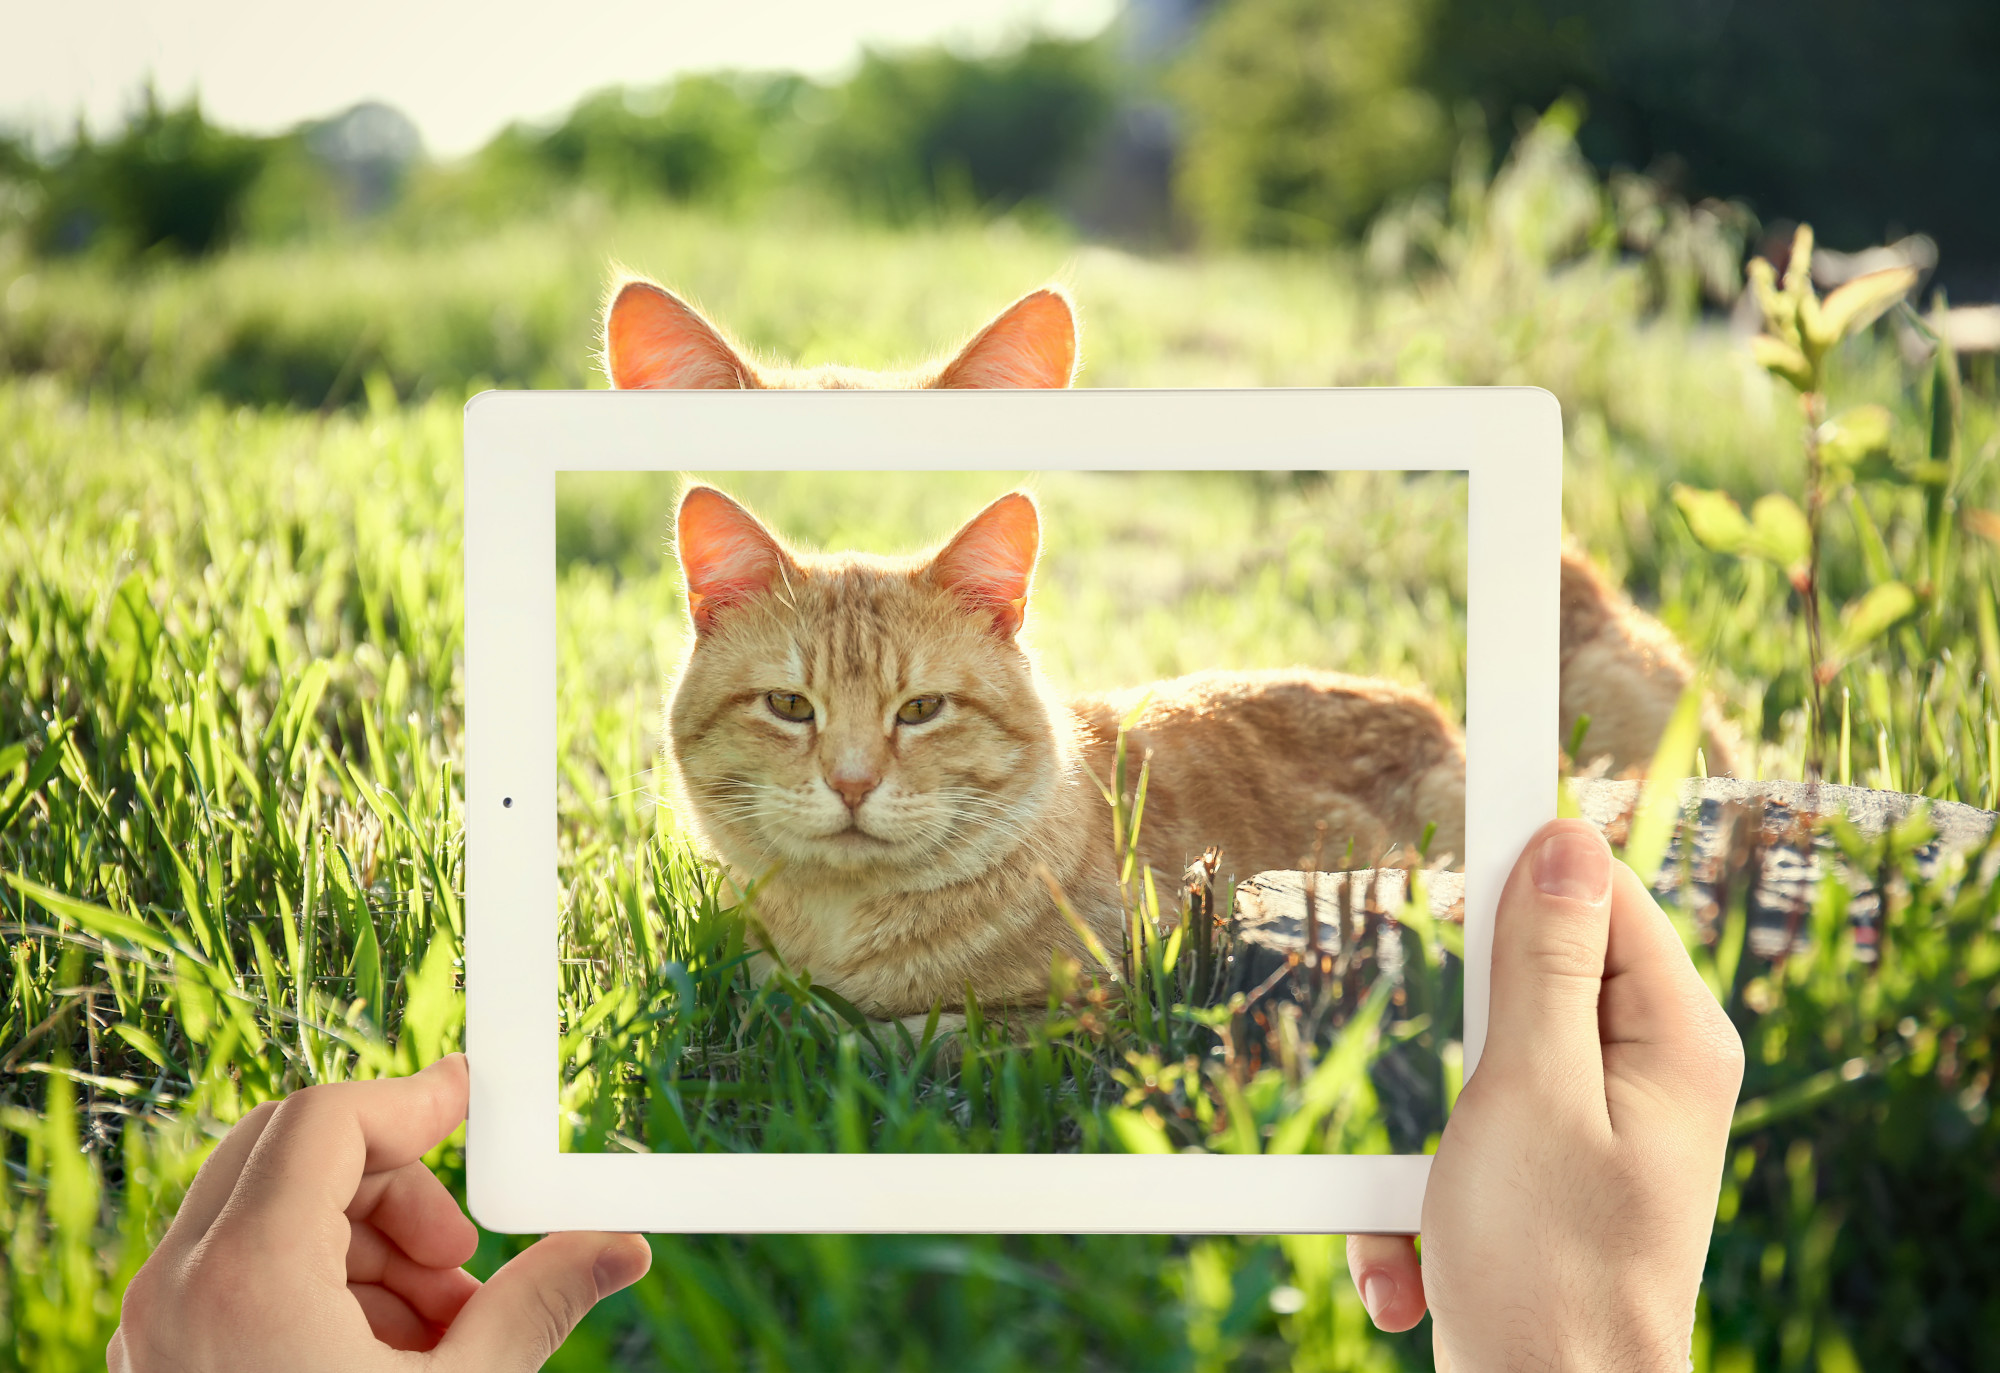 5 Foolproof Tips on How to Click Purrrfect Pet Photos